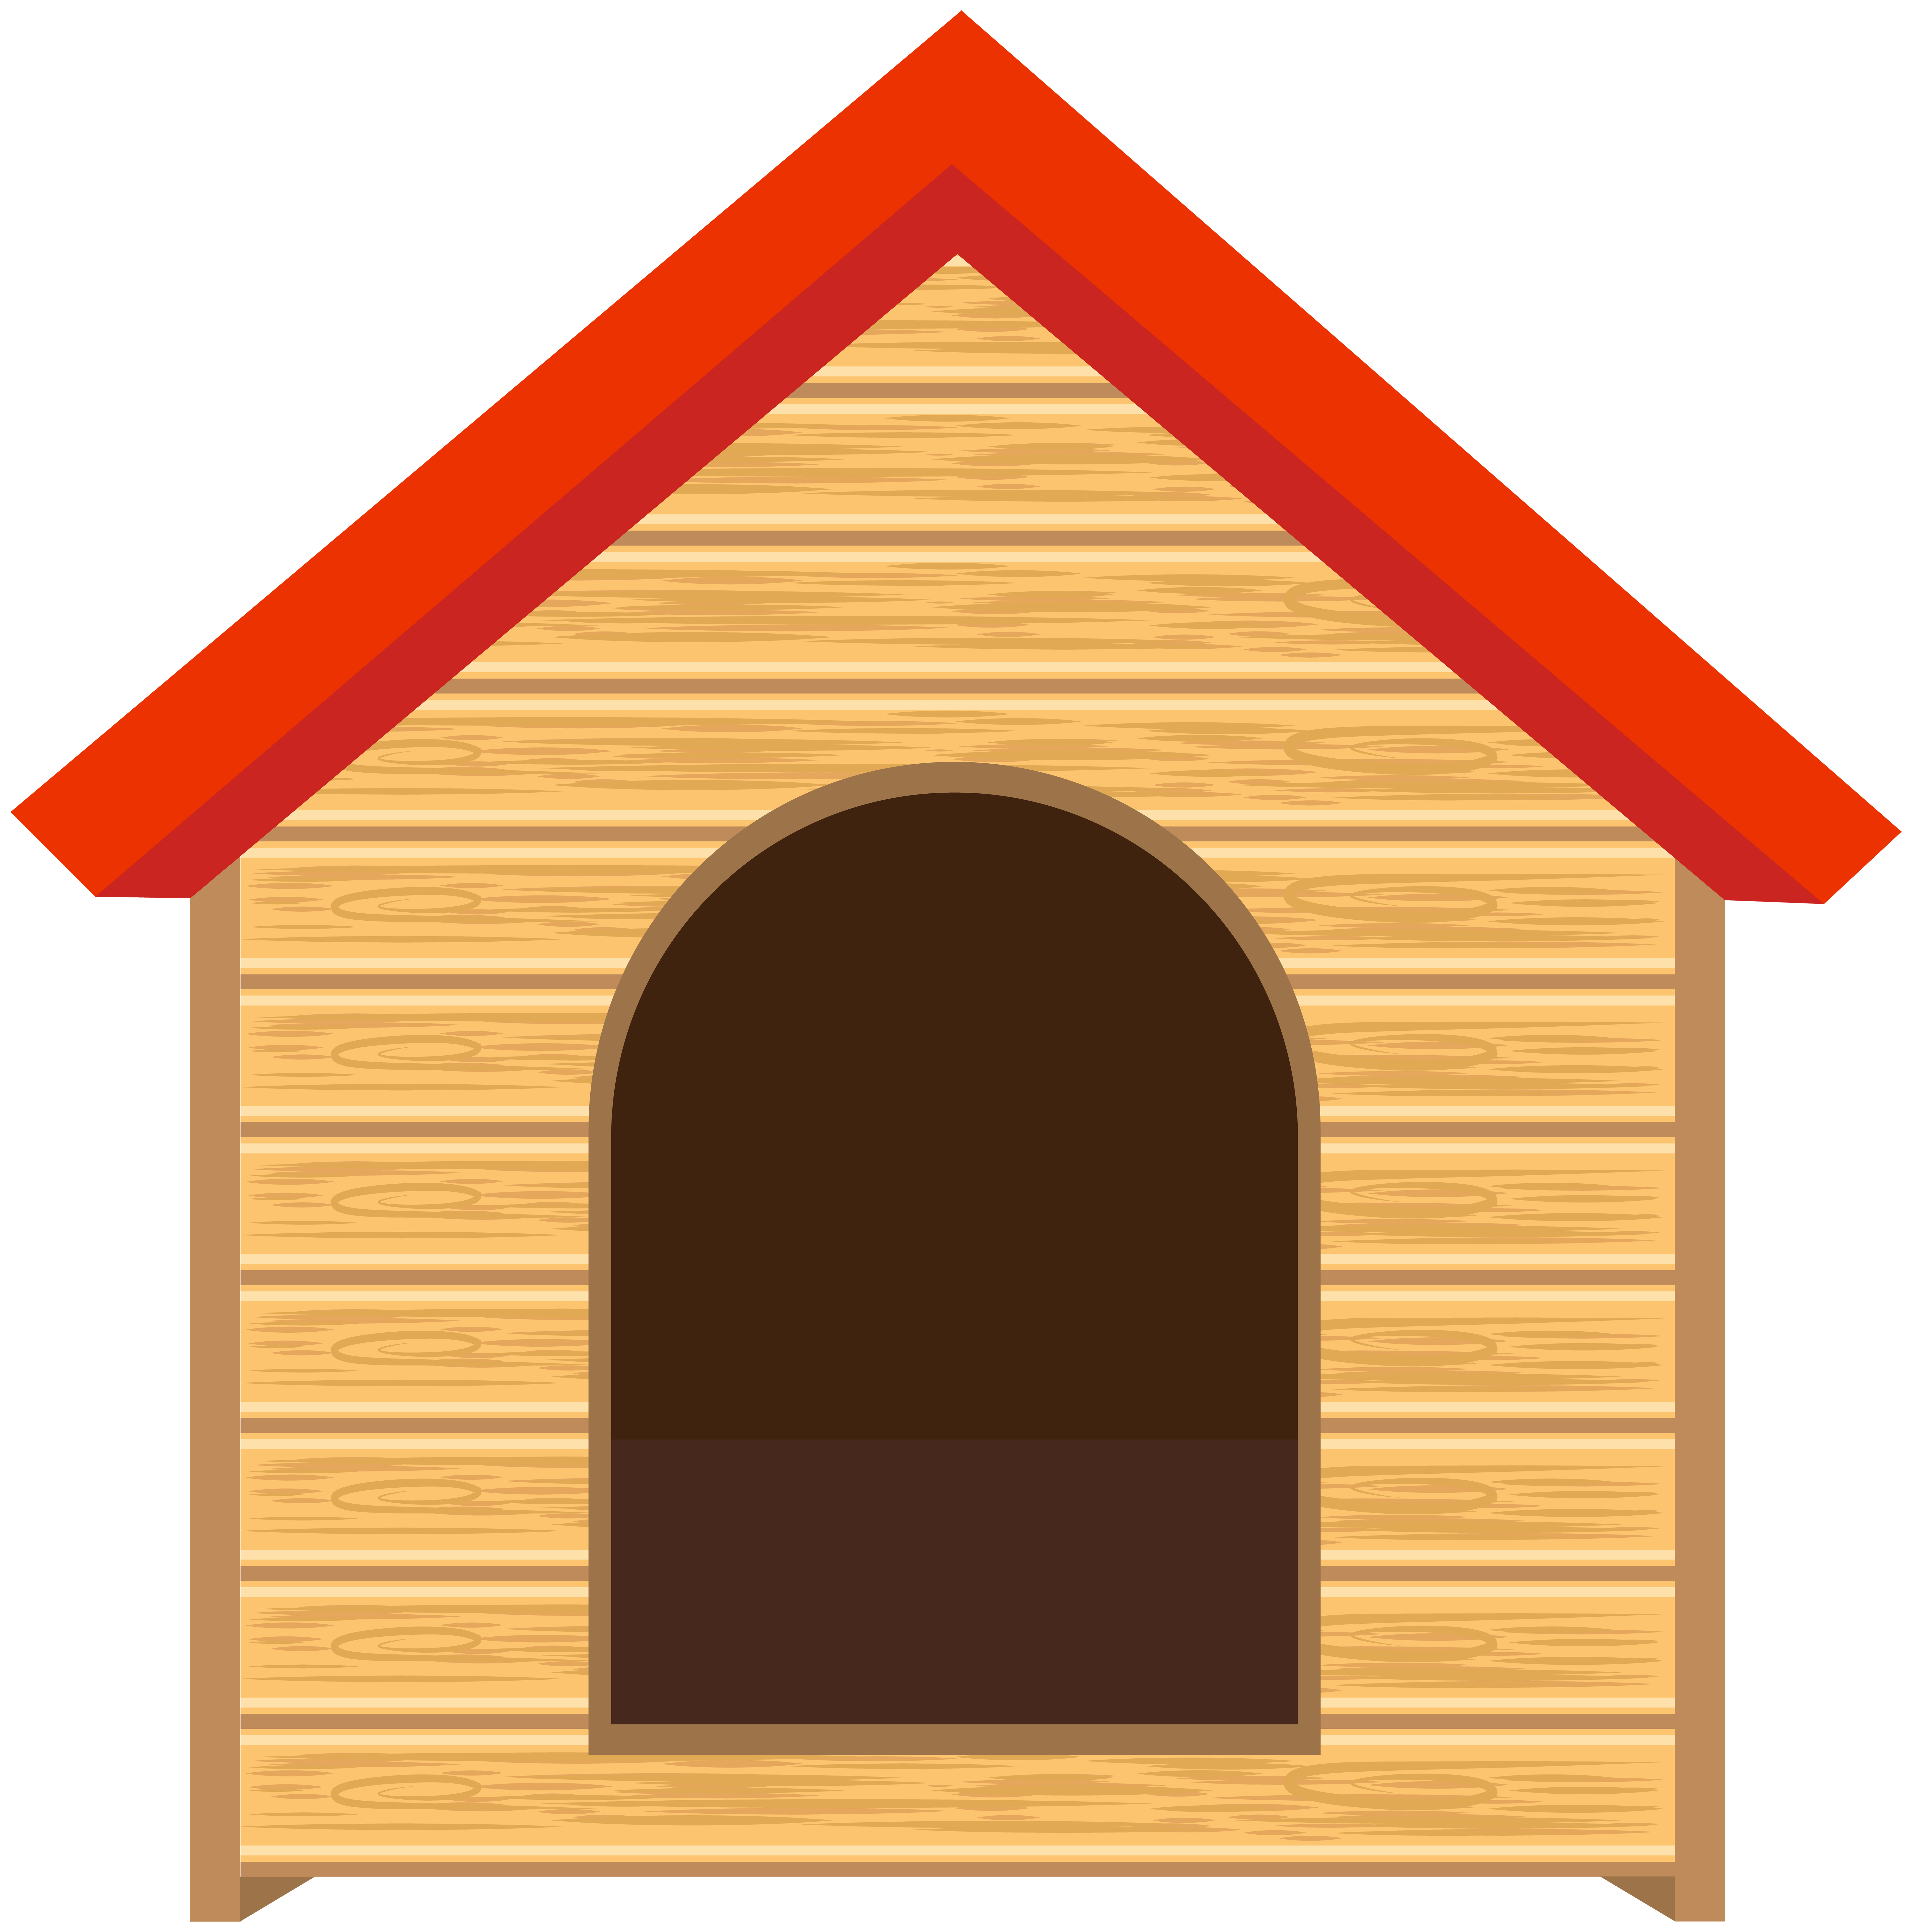 clipart black and white library Png clip art image. Doghouse clipart